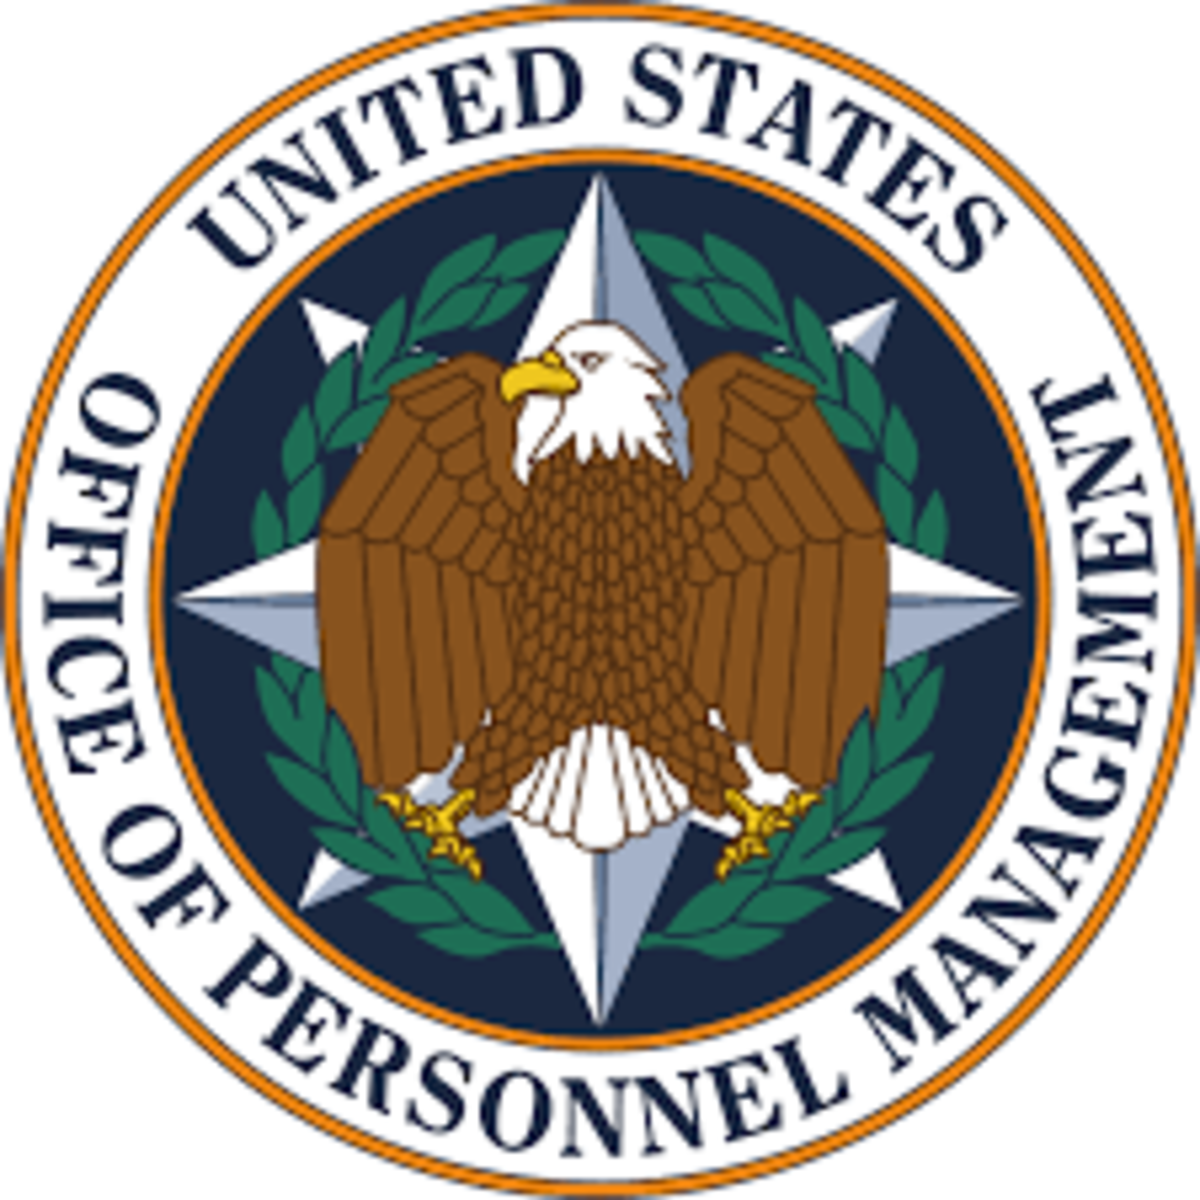 U.S. Office of Personnel Management - seal, logo